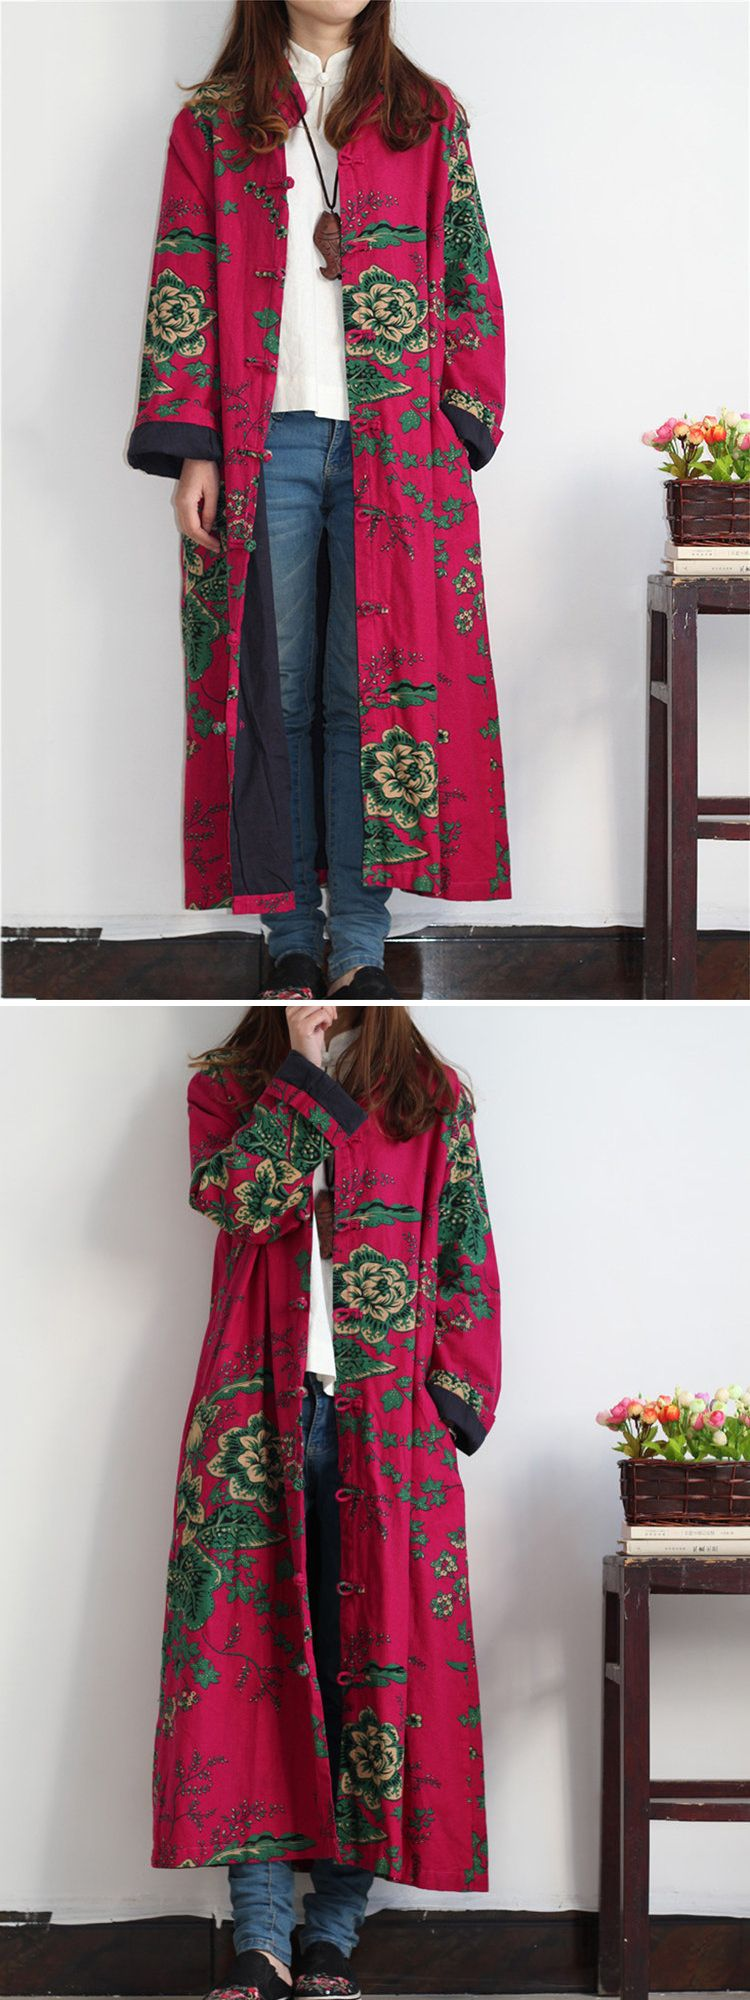 Vintage flower printed long trench coats fashion pinterest